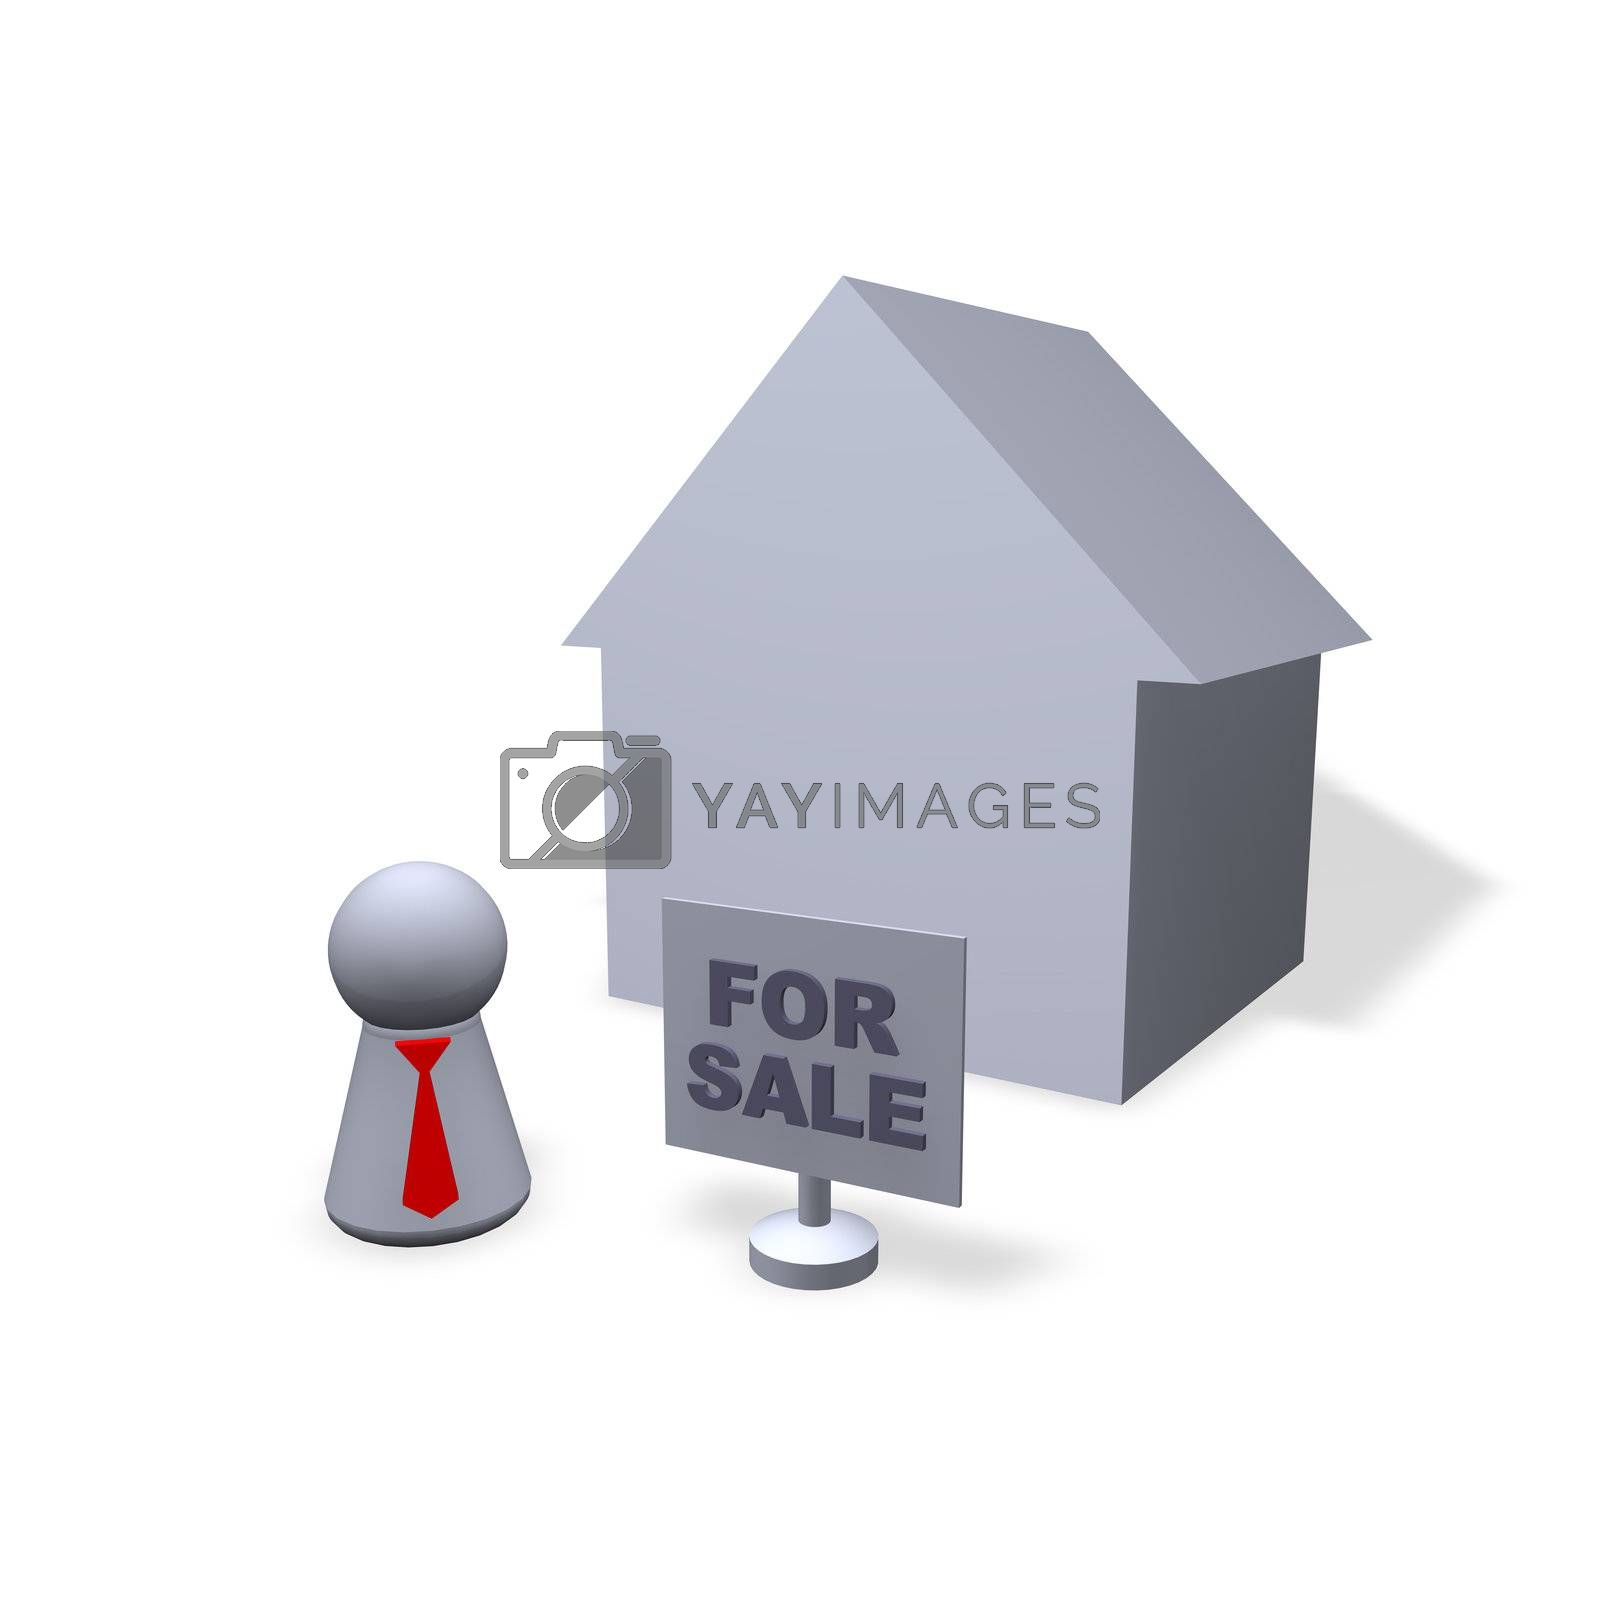 play figure broker with red tie, a house and for sale sign